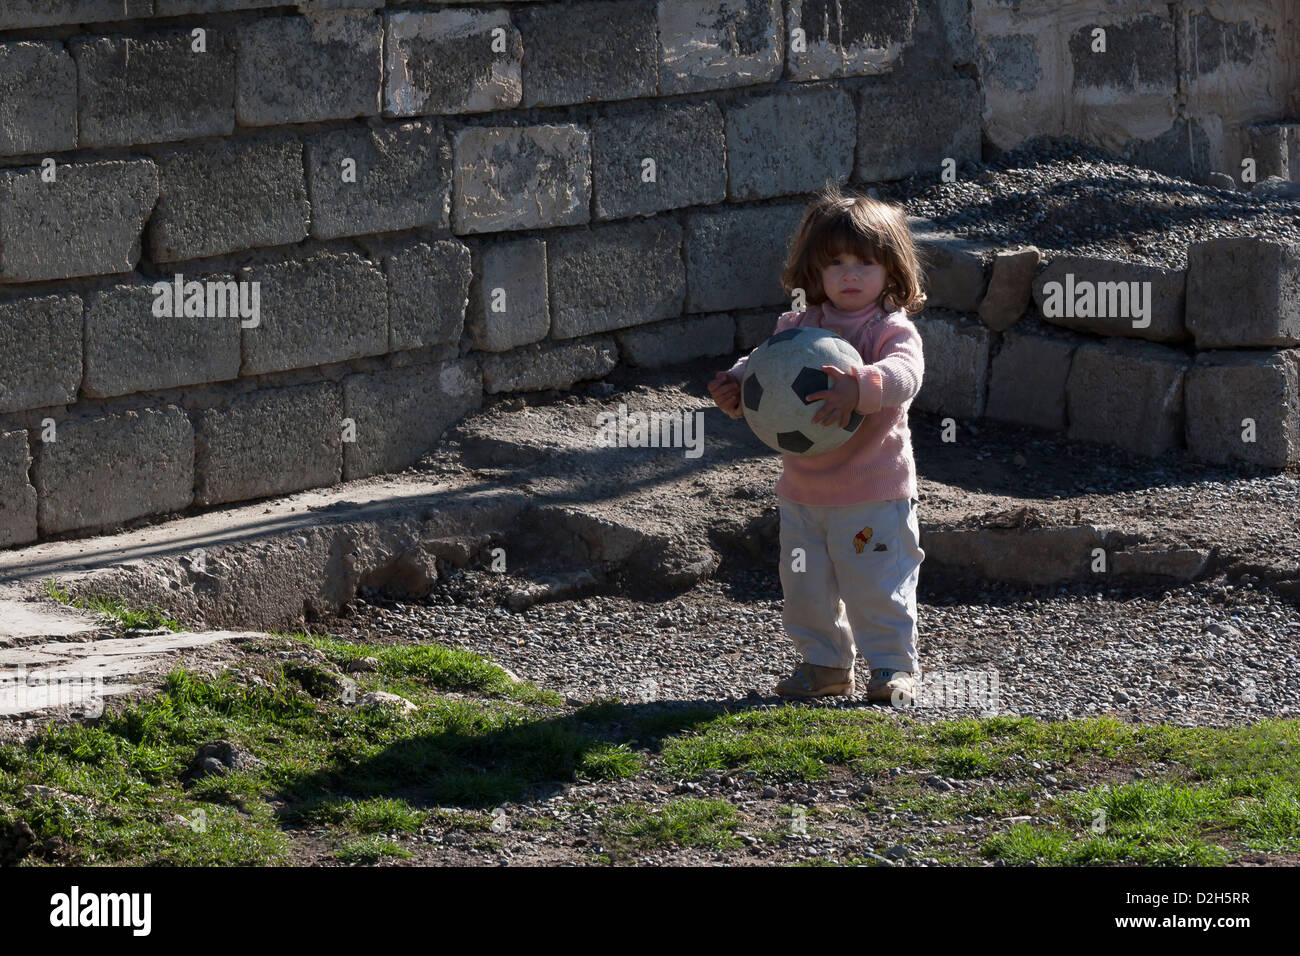 Kurdish refugee girl toddler, outside home in region of Iraqi Kurdistan, Northern Iraq - Stock Image